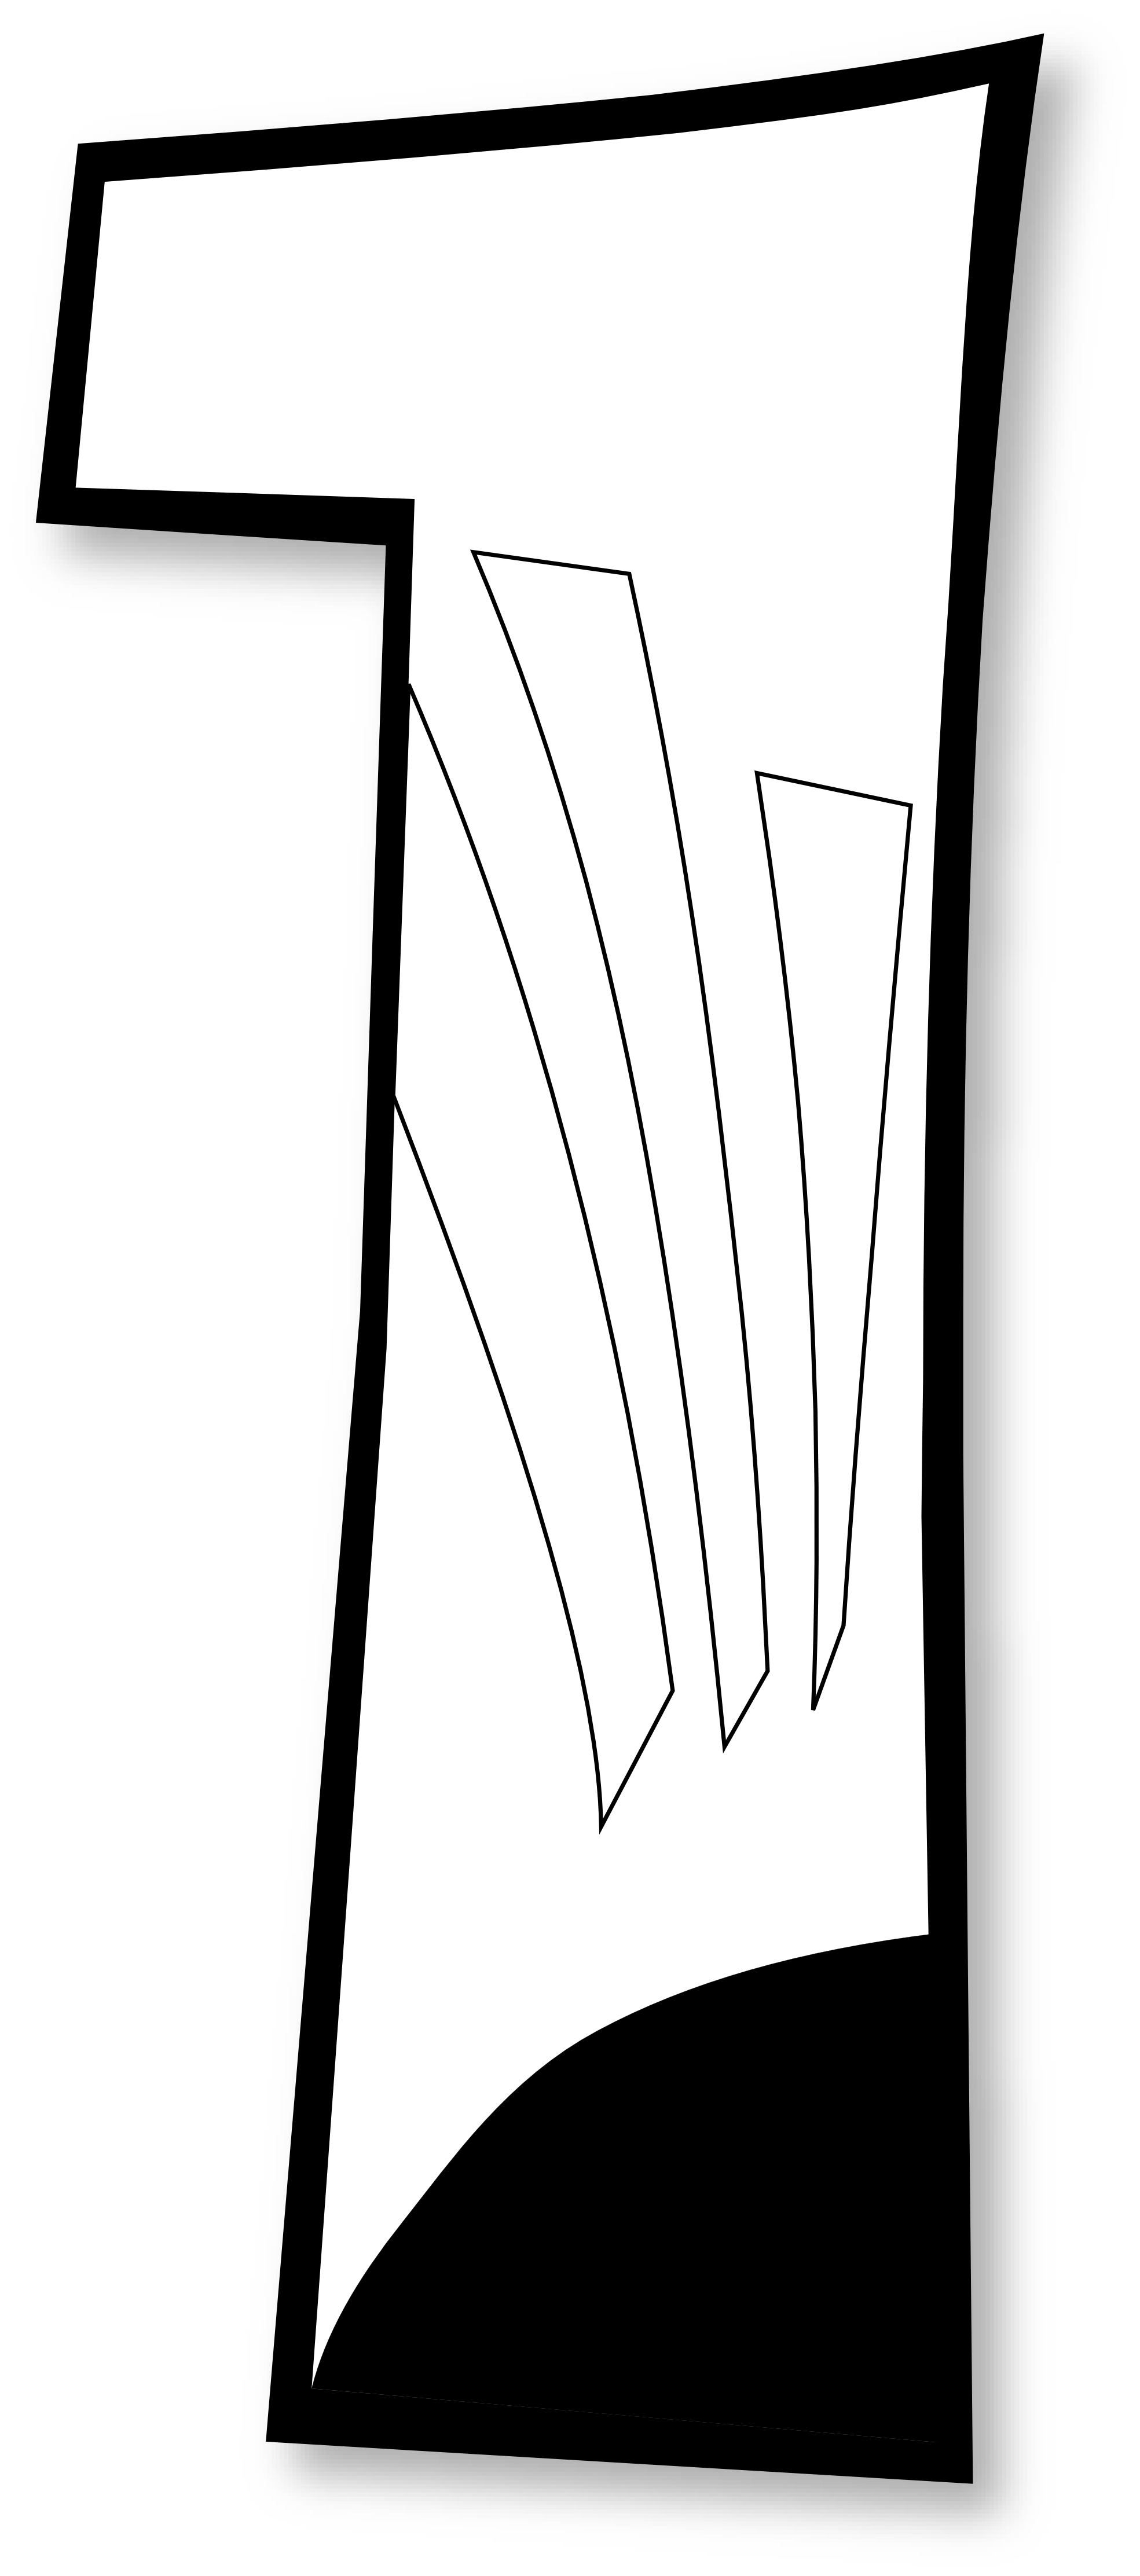 coloring sheet 7 days of creation coloring pages free creation coloring pages kidsuki of sheet free pages creation days 7 coloring coloring